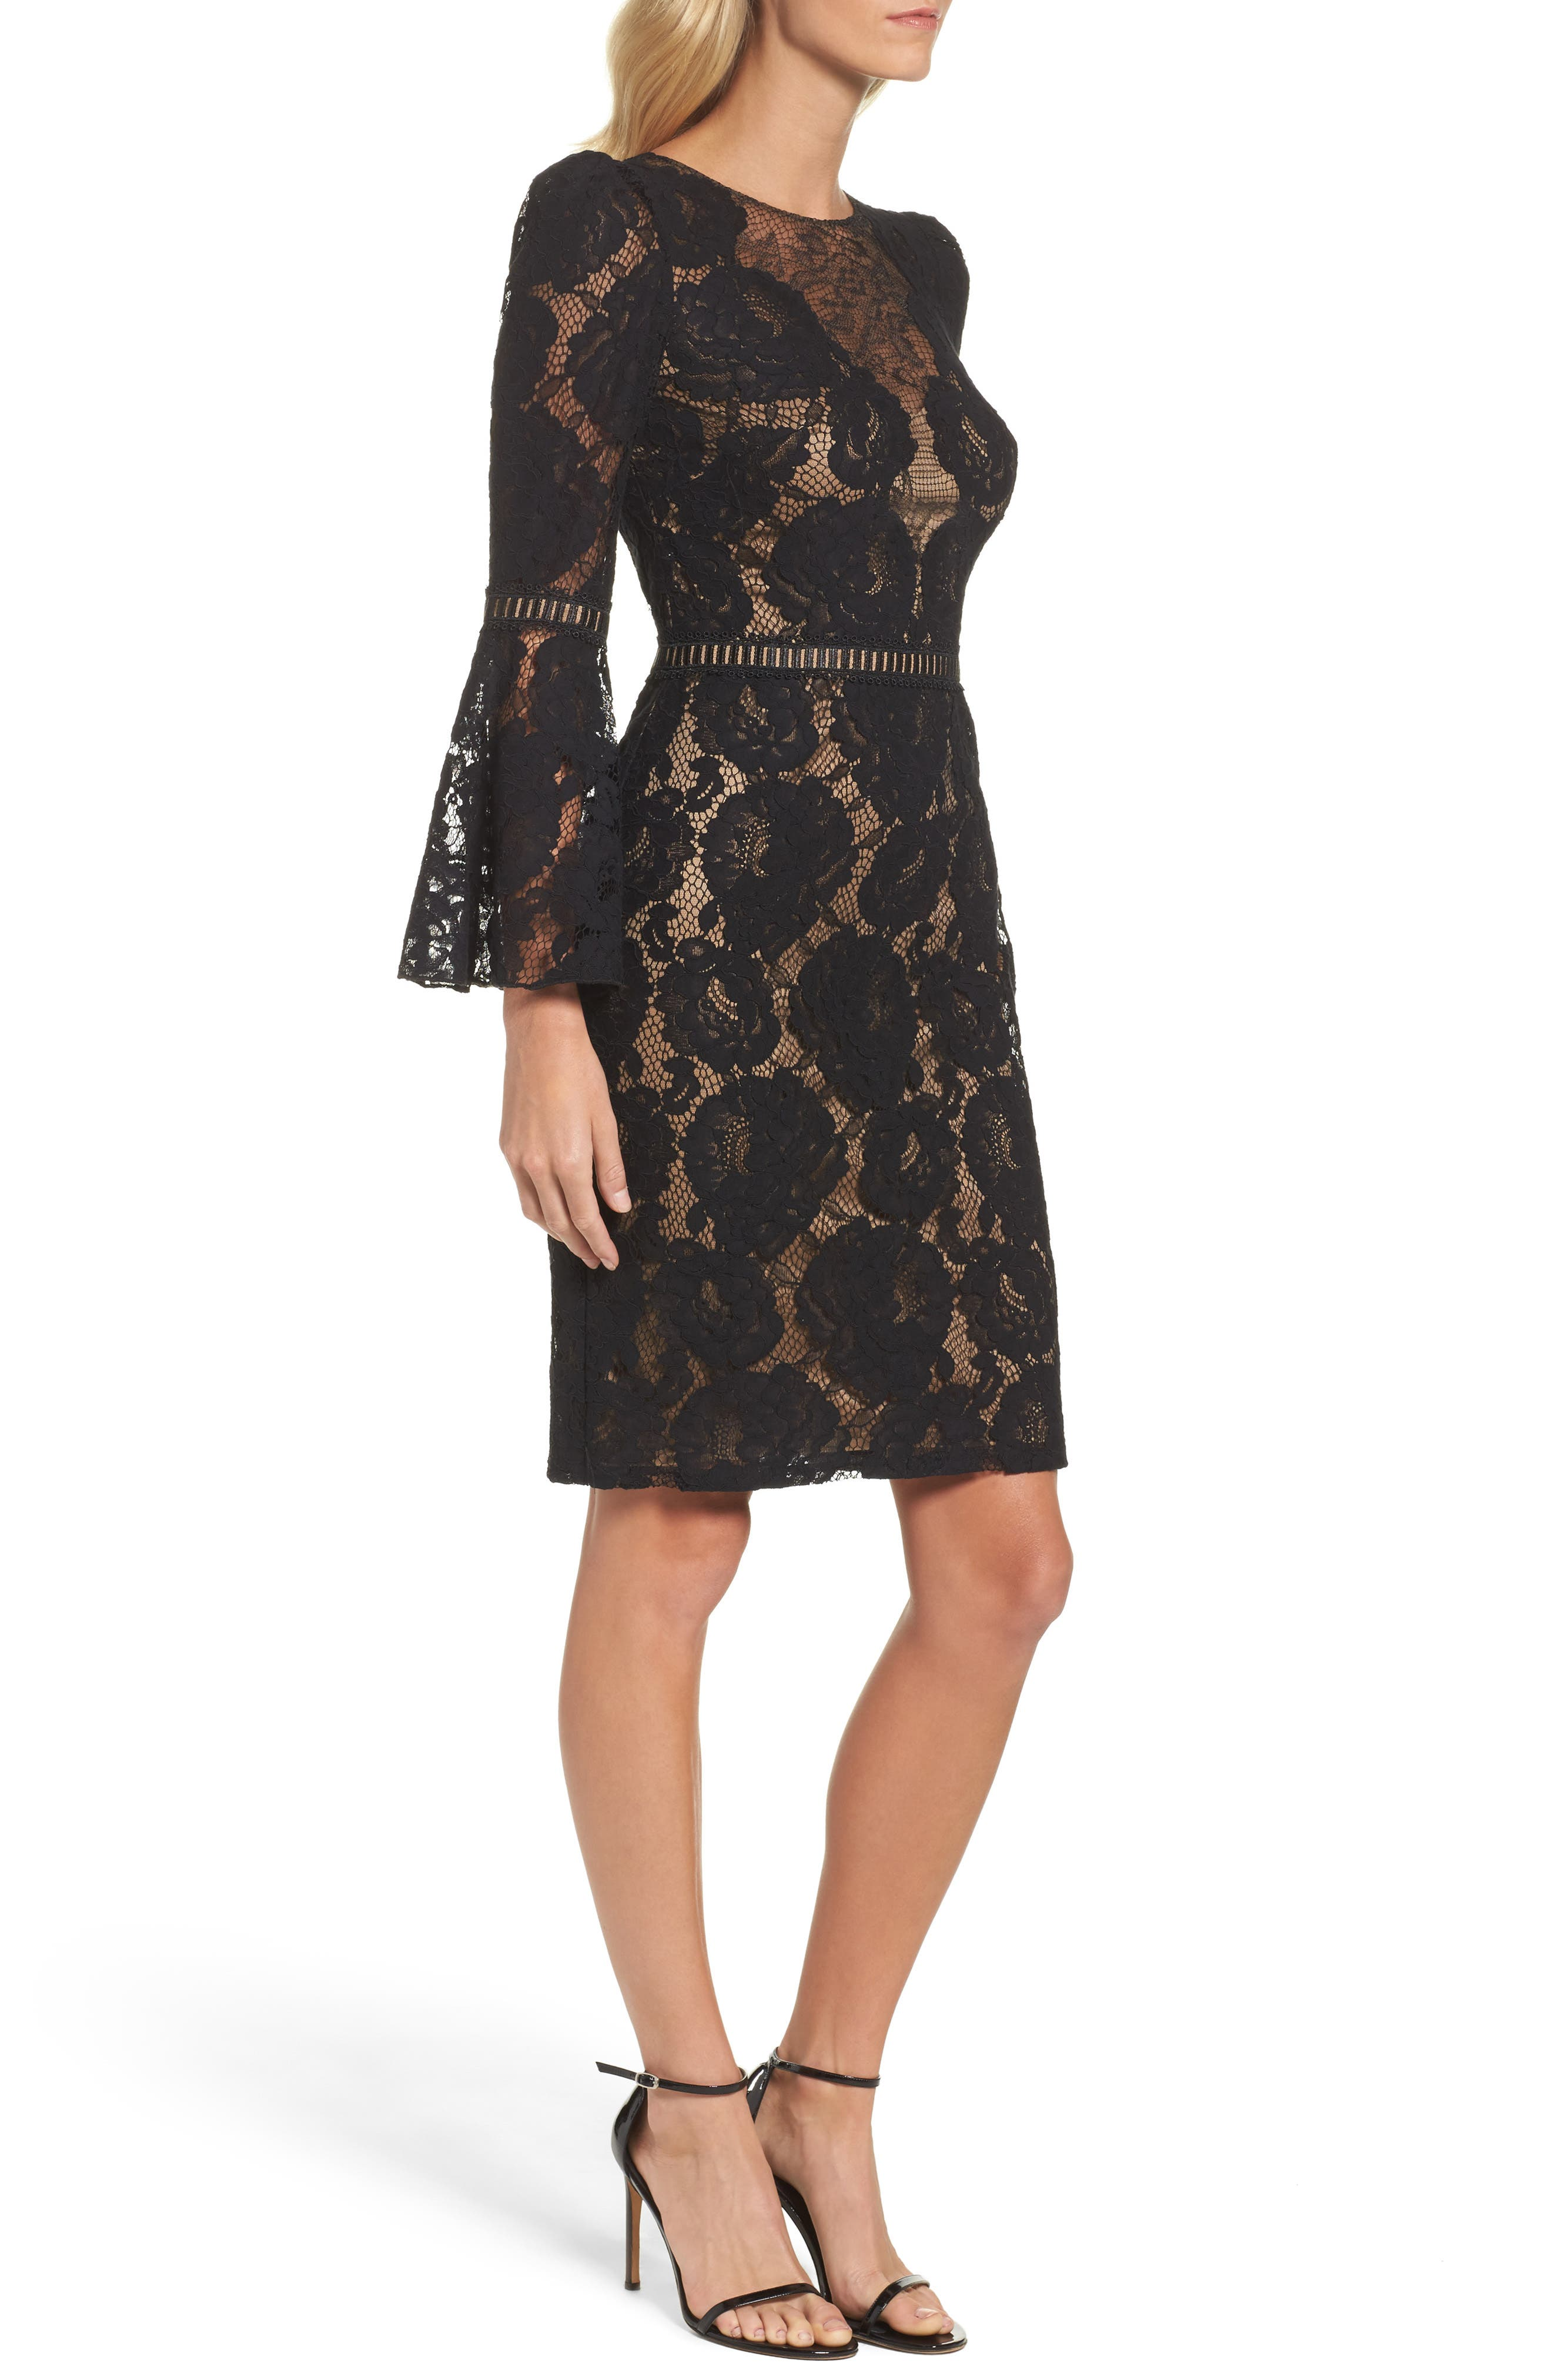 Lace Bell Sleeve Dress,                             Alternate thumbnail 3, color,                             Black/ Nude